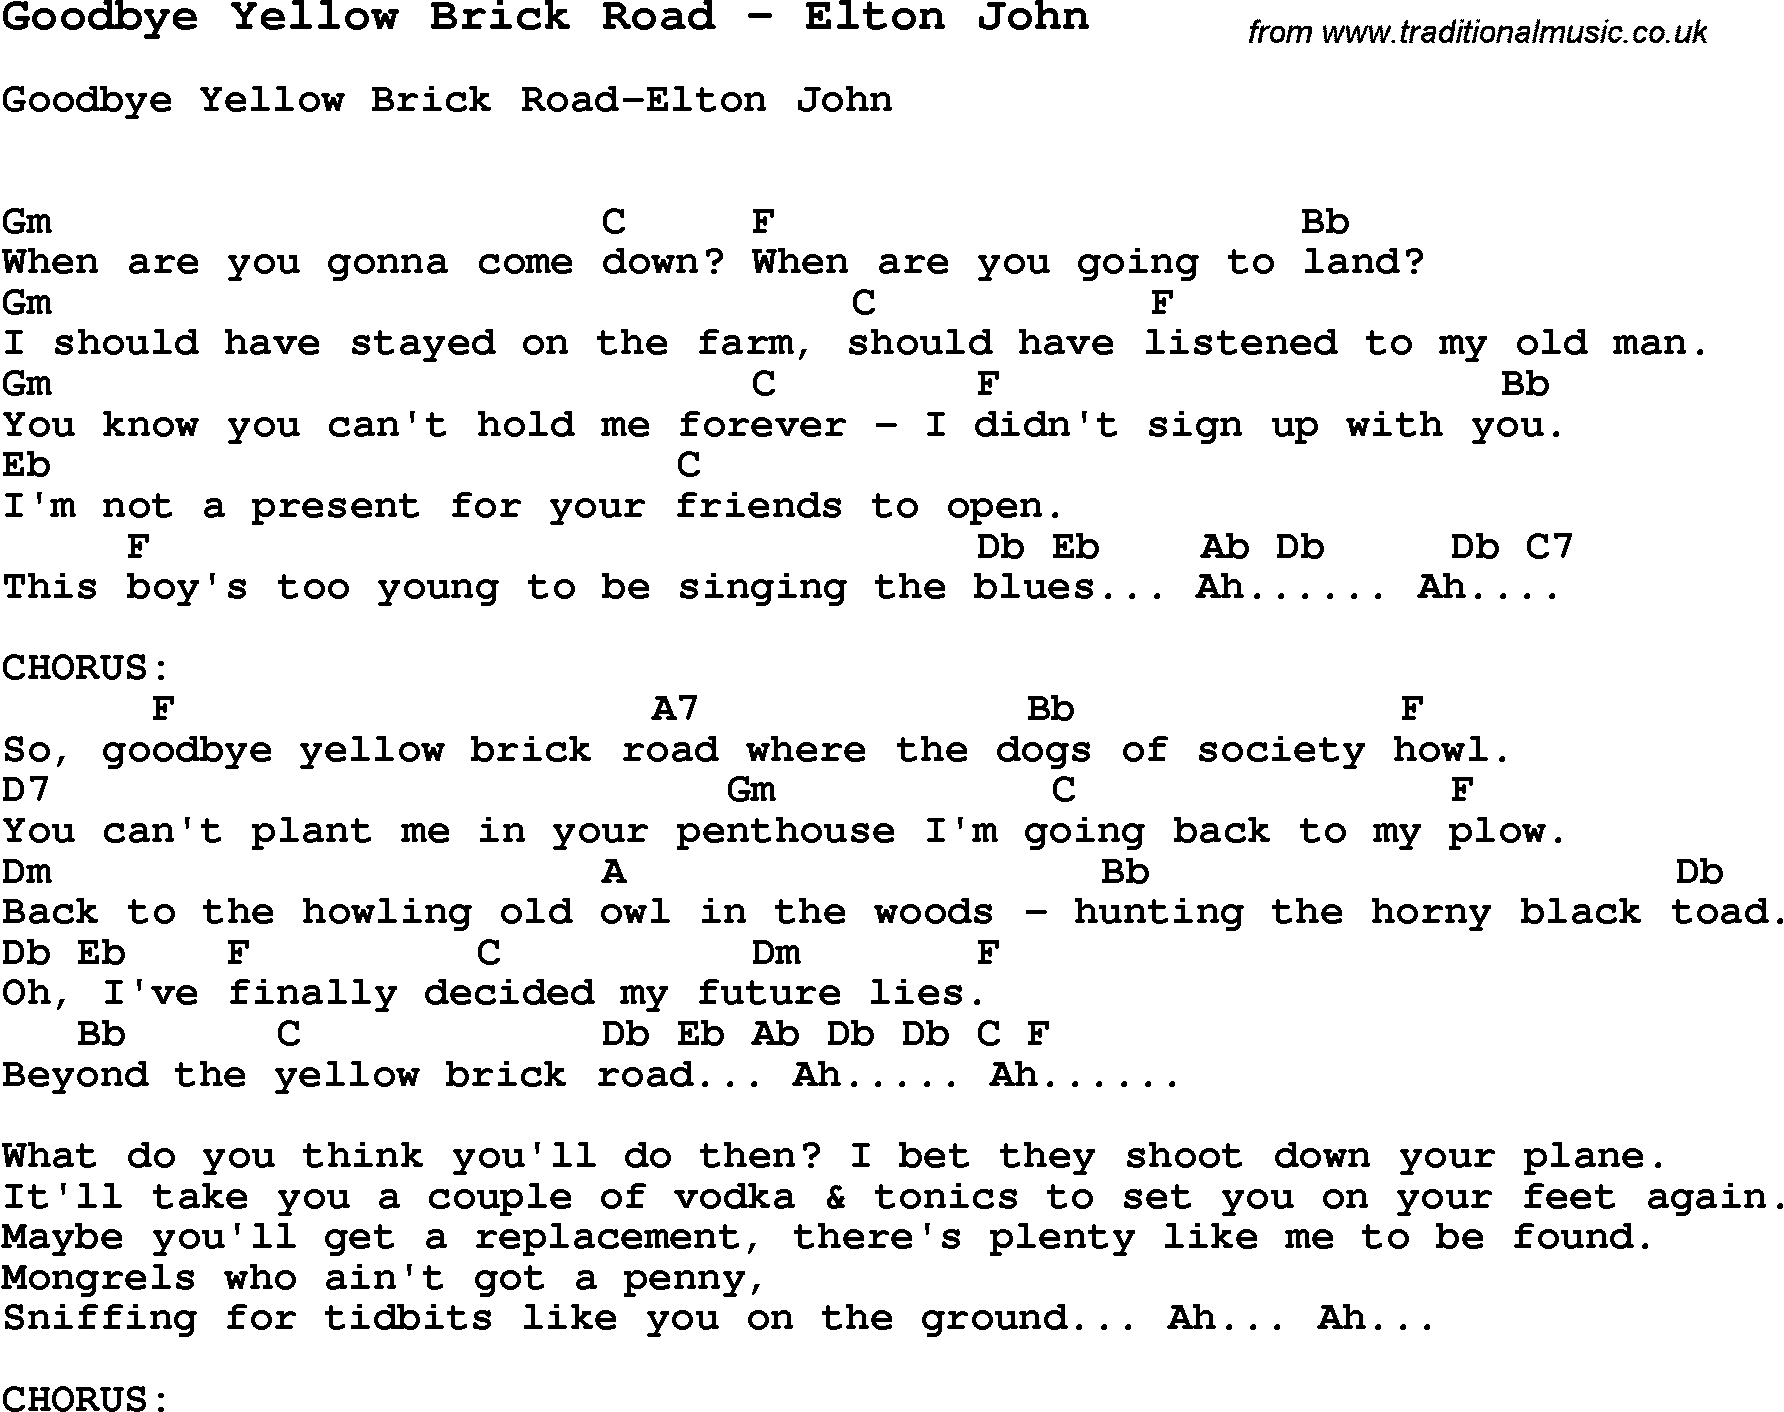 Song Goodbye Yellow Brick Road by Elton John, song lyric for vocal  performance plus accompaniment chords for Ukulele, Guitar, Banjo etc.